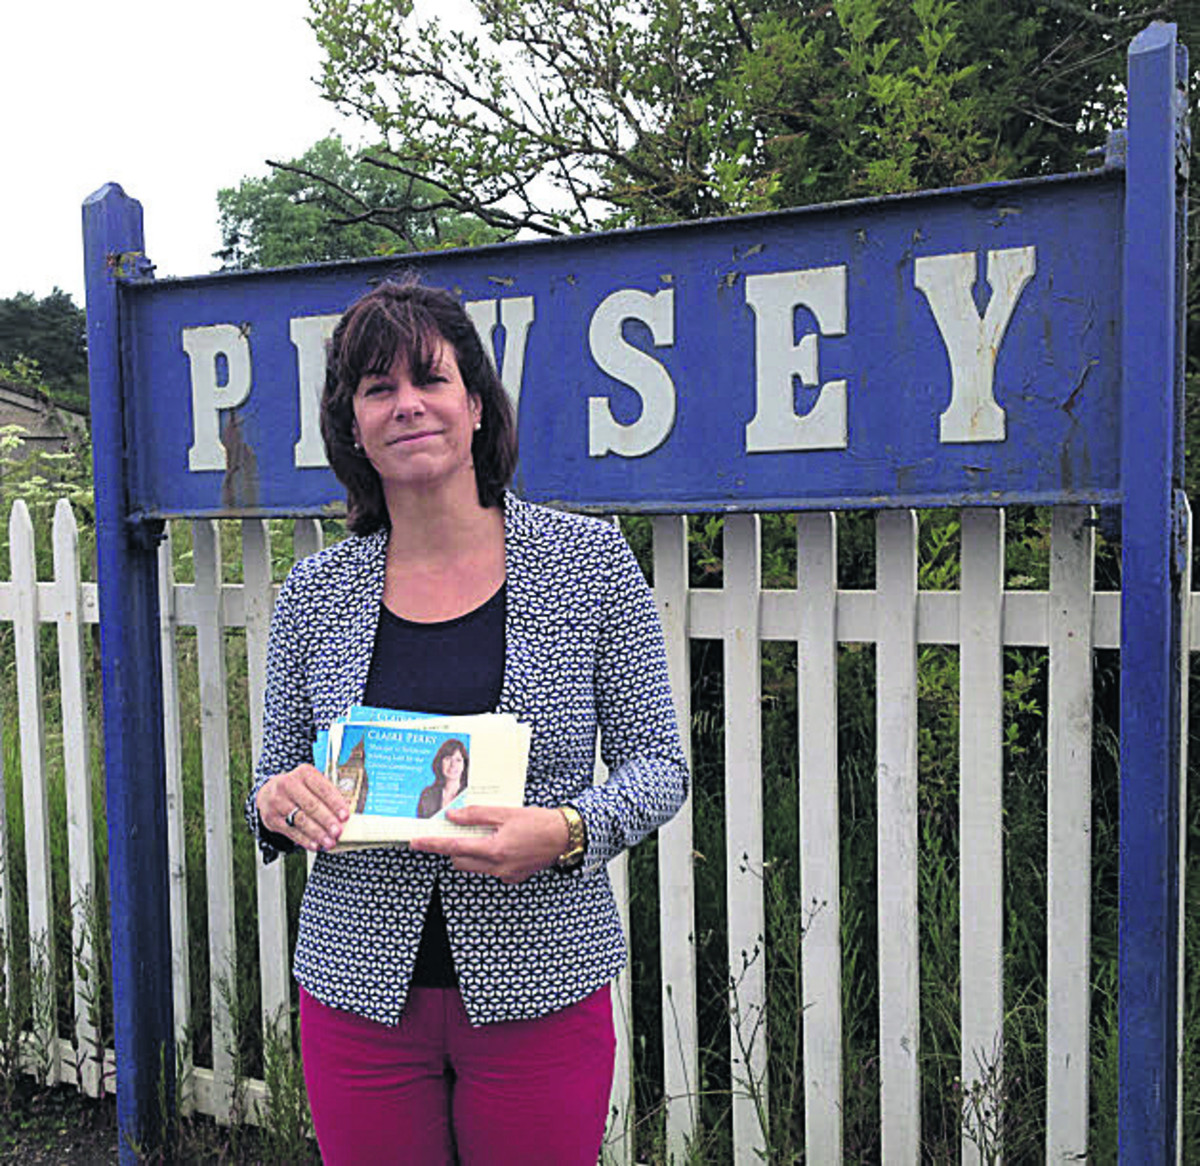 Devizes MP Claire Perry during a recent visit to Pewsey station